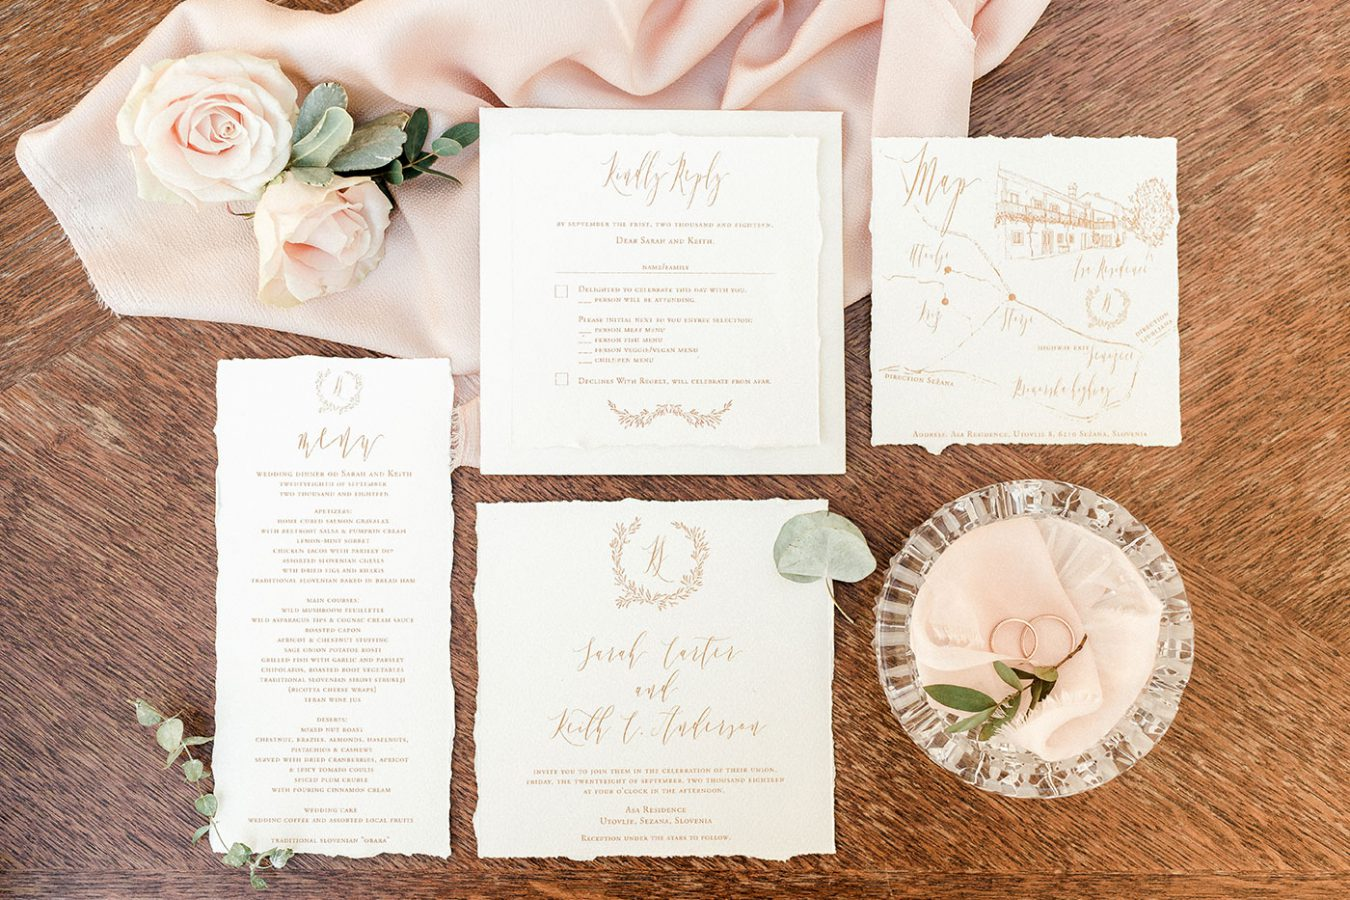 Wedding stationery ASA Residence Private Wedding Villa Kras Slovenia